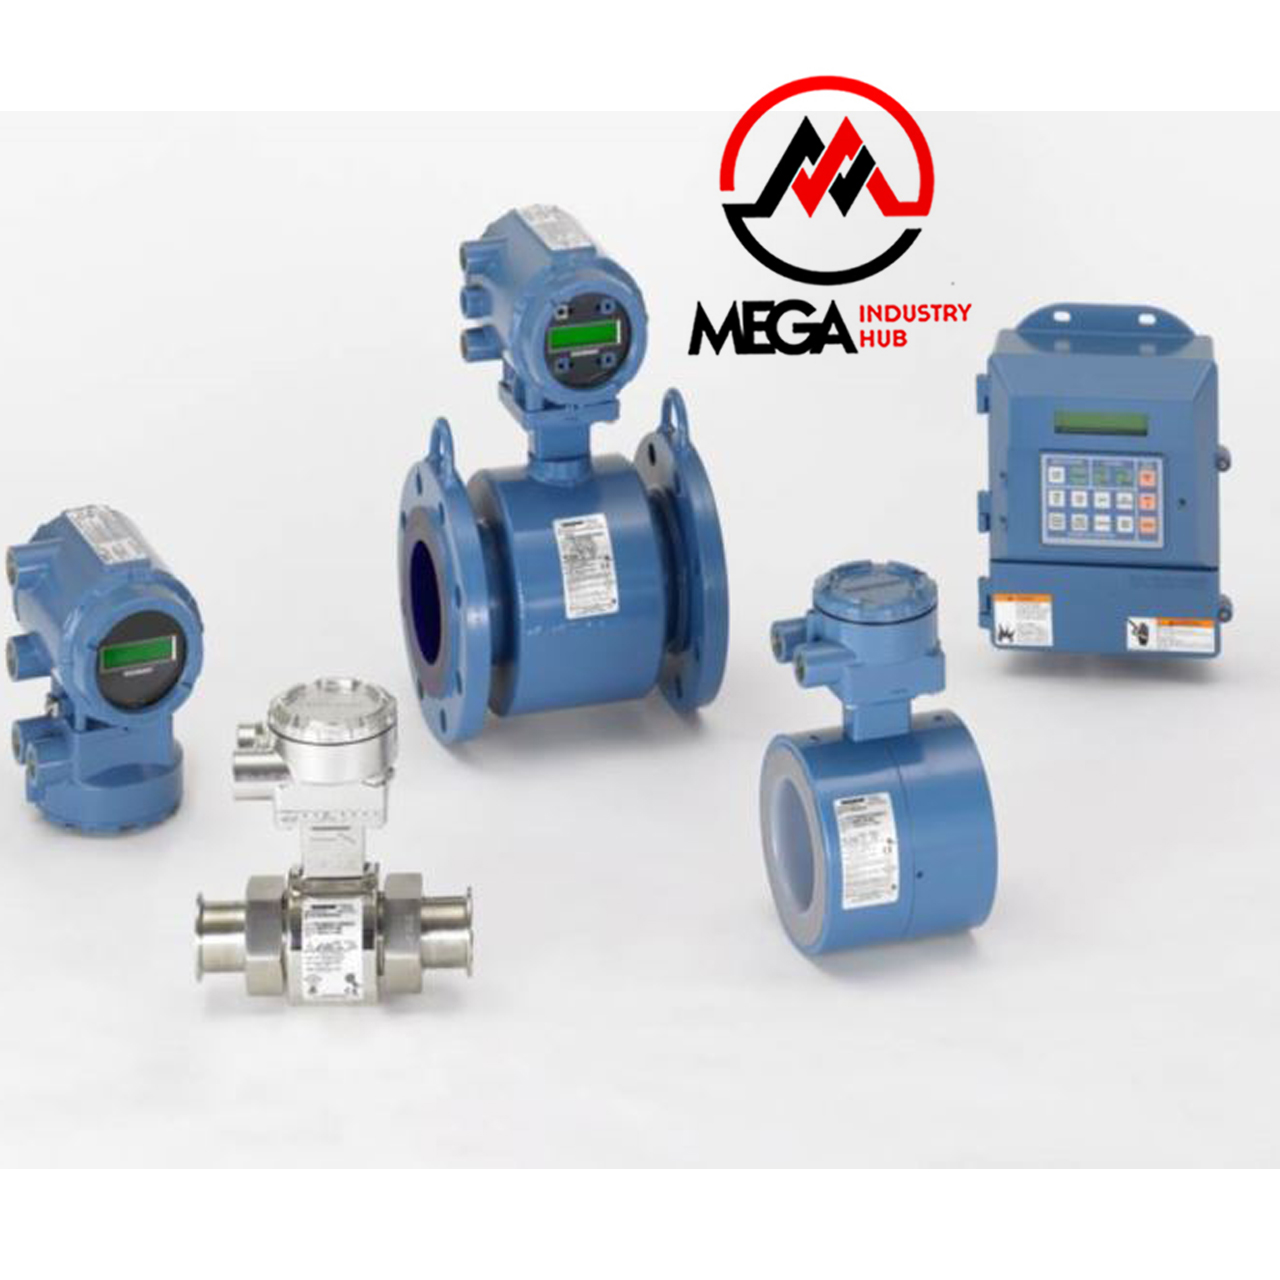 ترانسمیتر روزمونت Rosemount 8750W Magnetic Flow Meters for Utility Water Applications